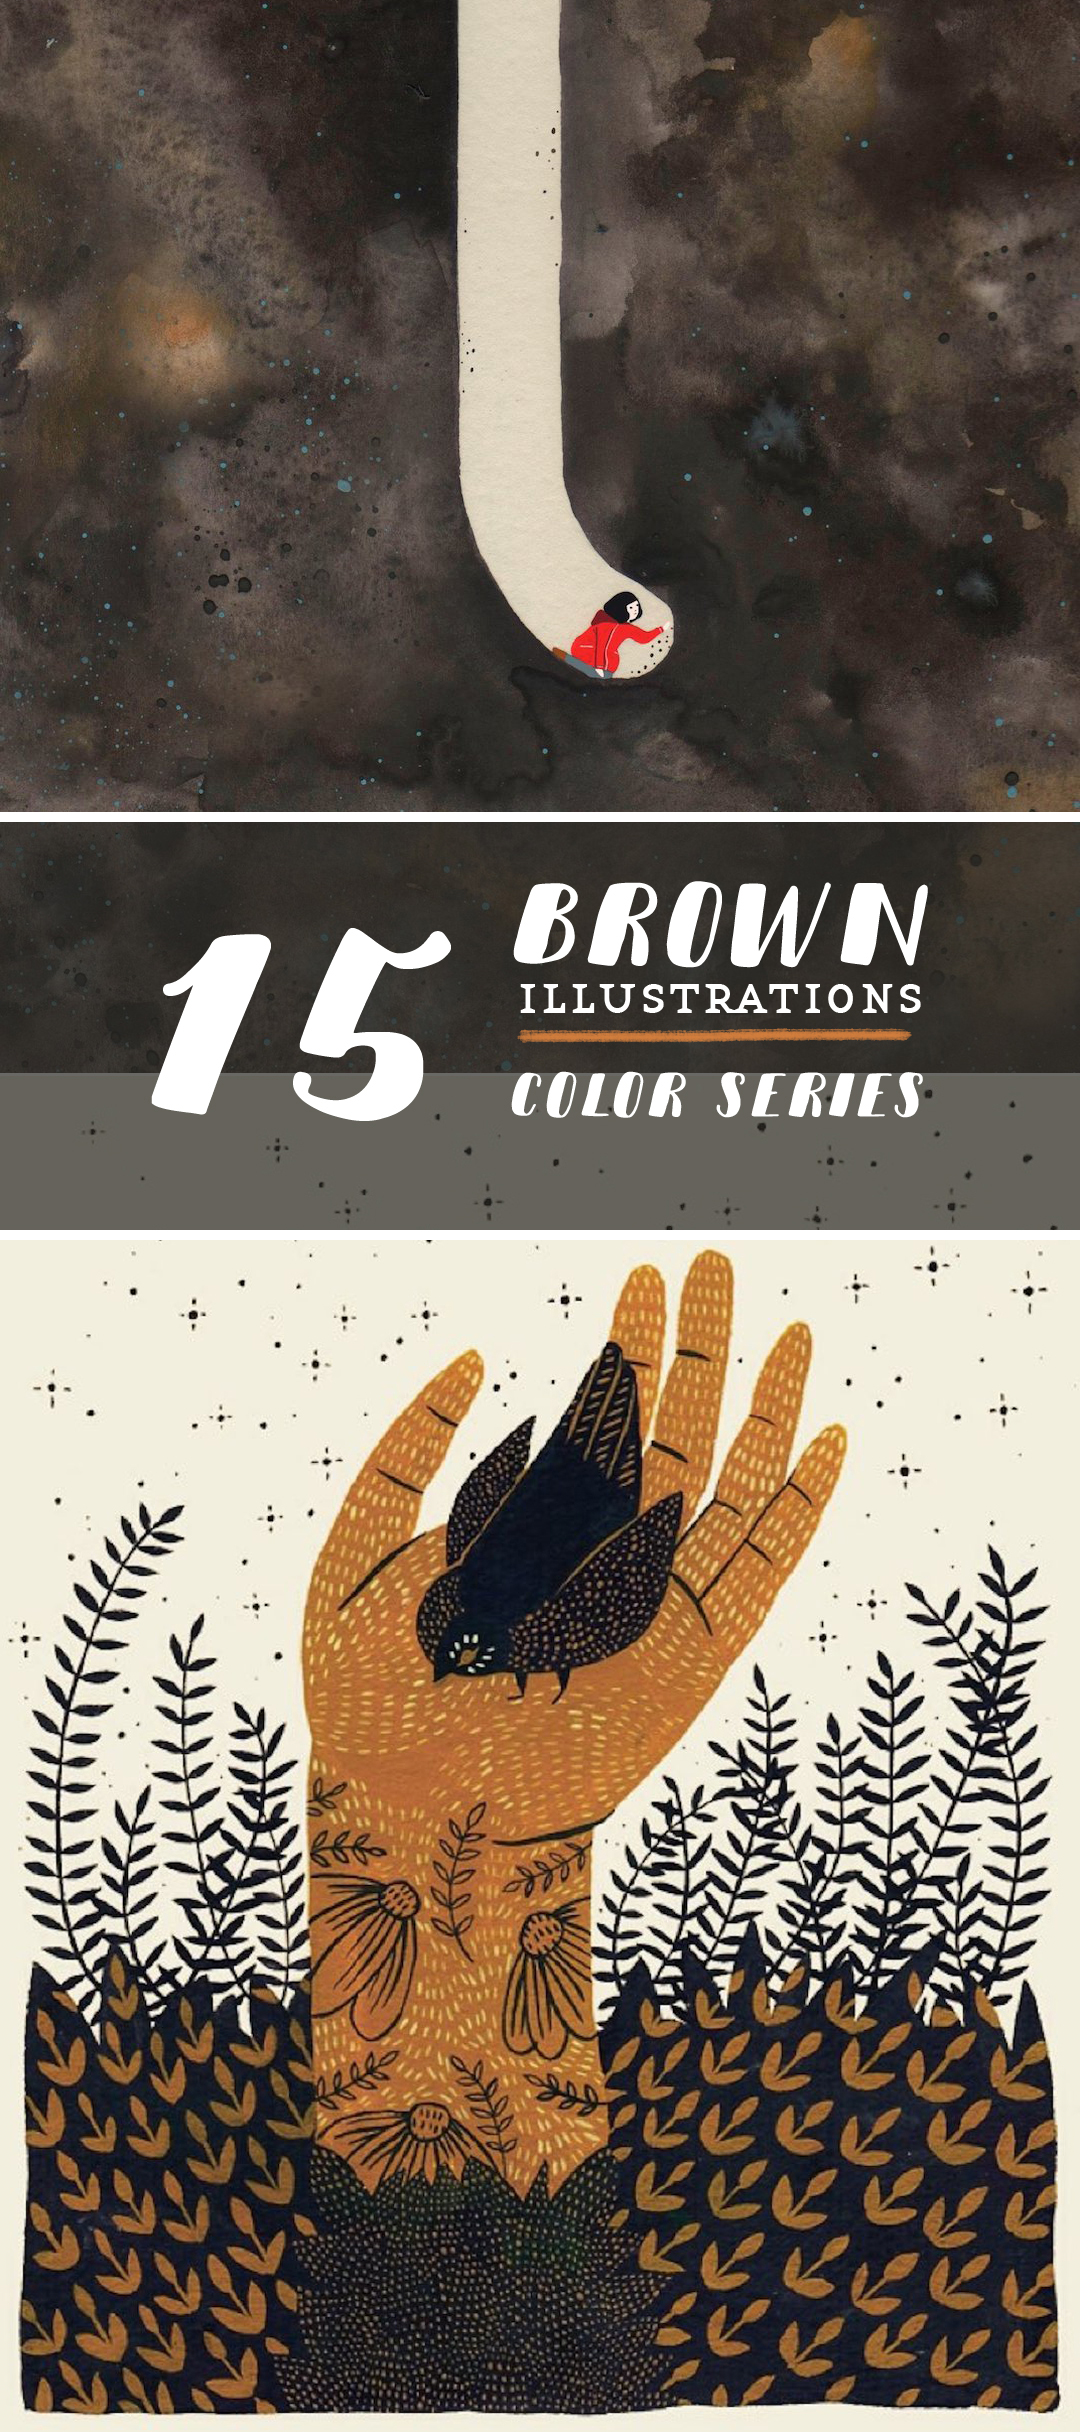 Brown illustrations